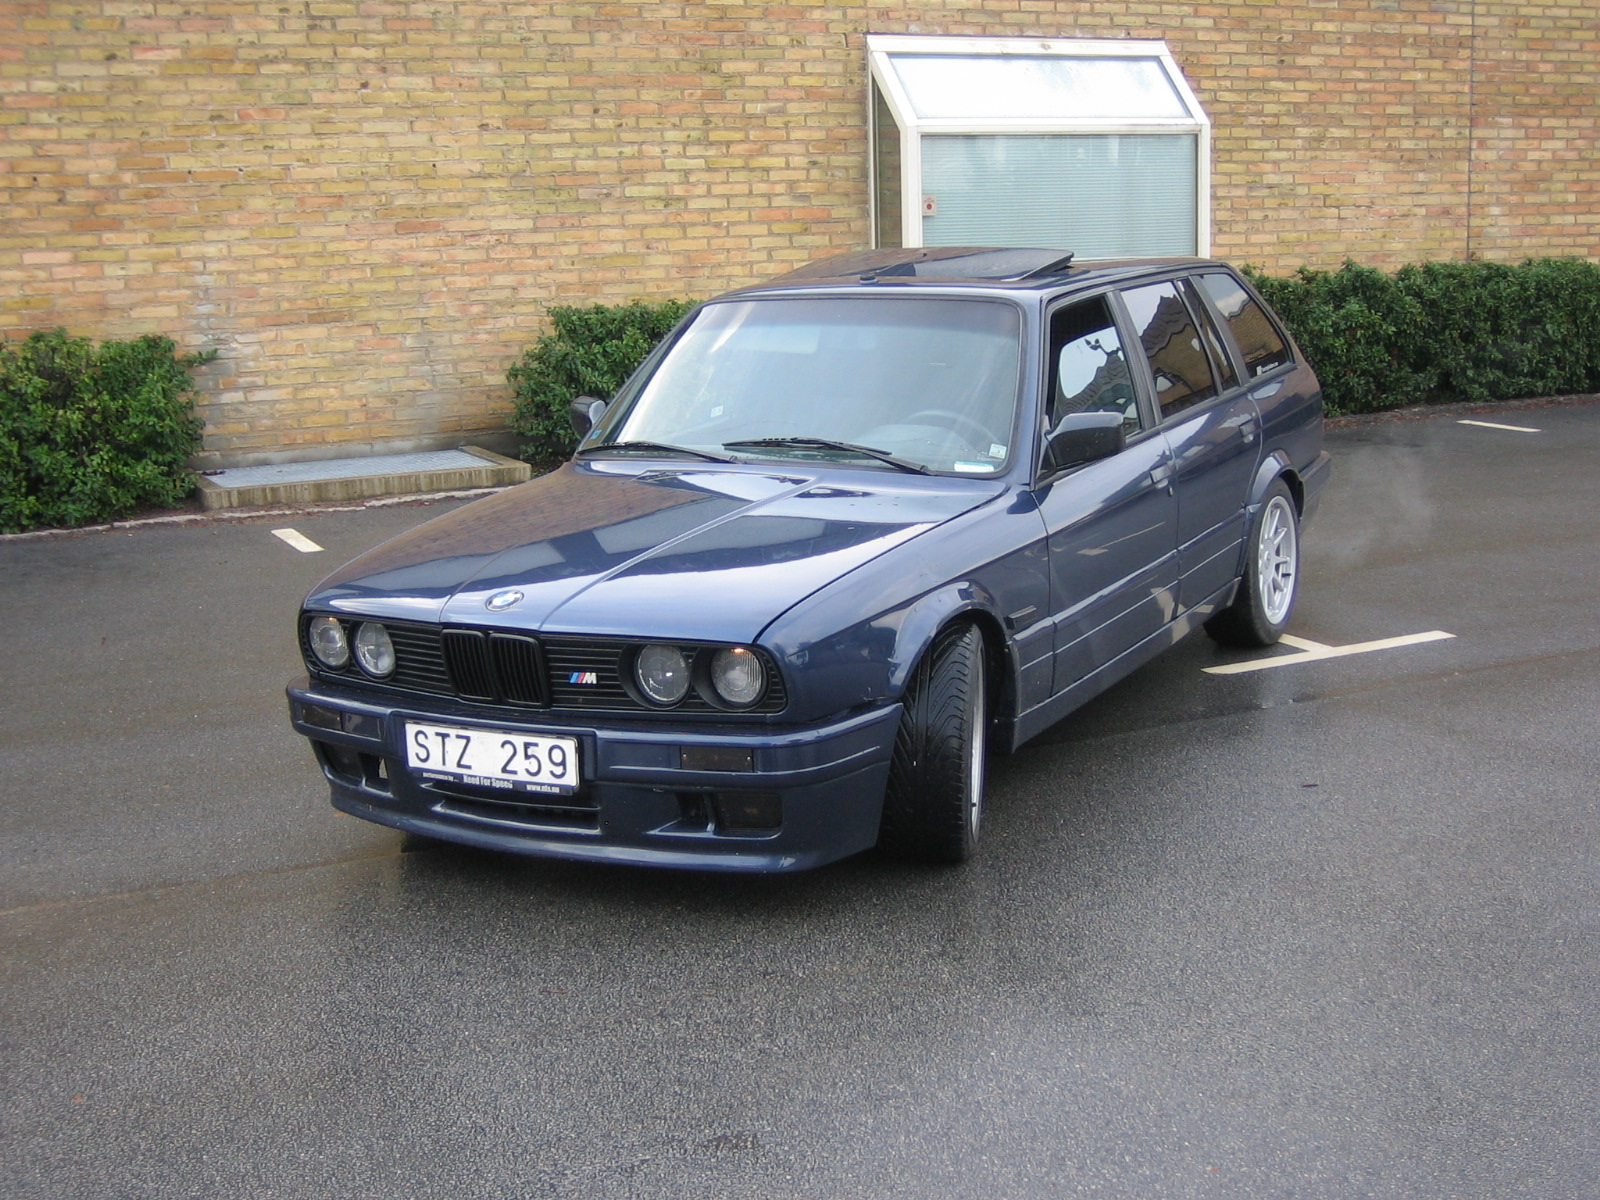 BMW 3 series 325is 1991 photo - 11